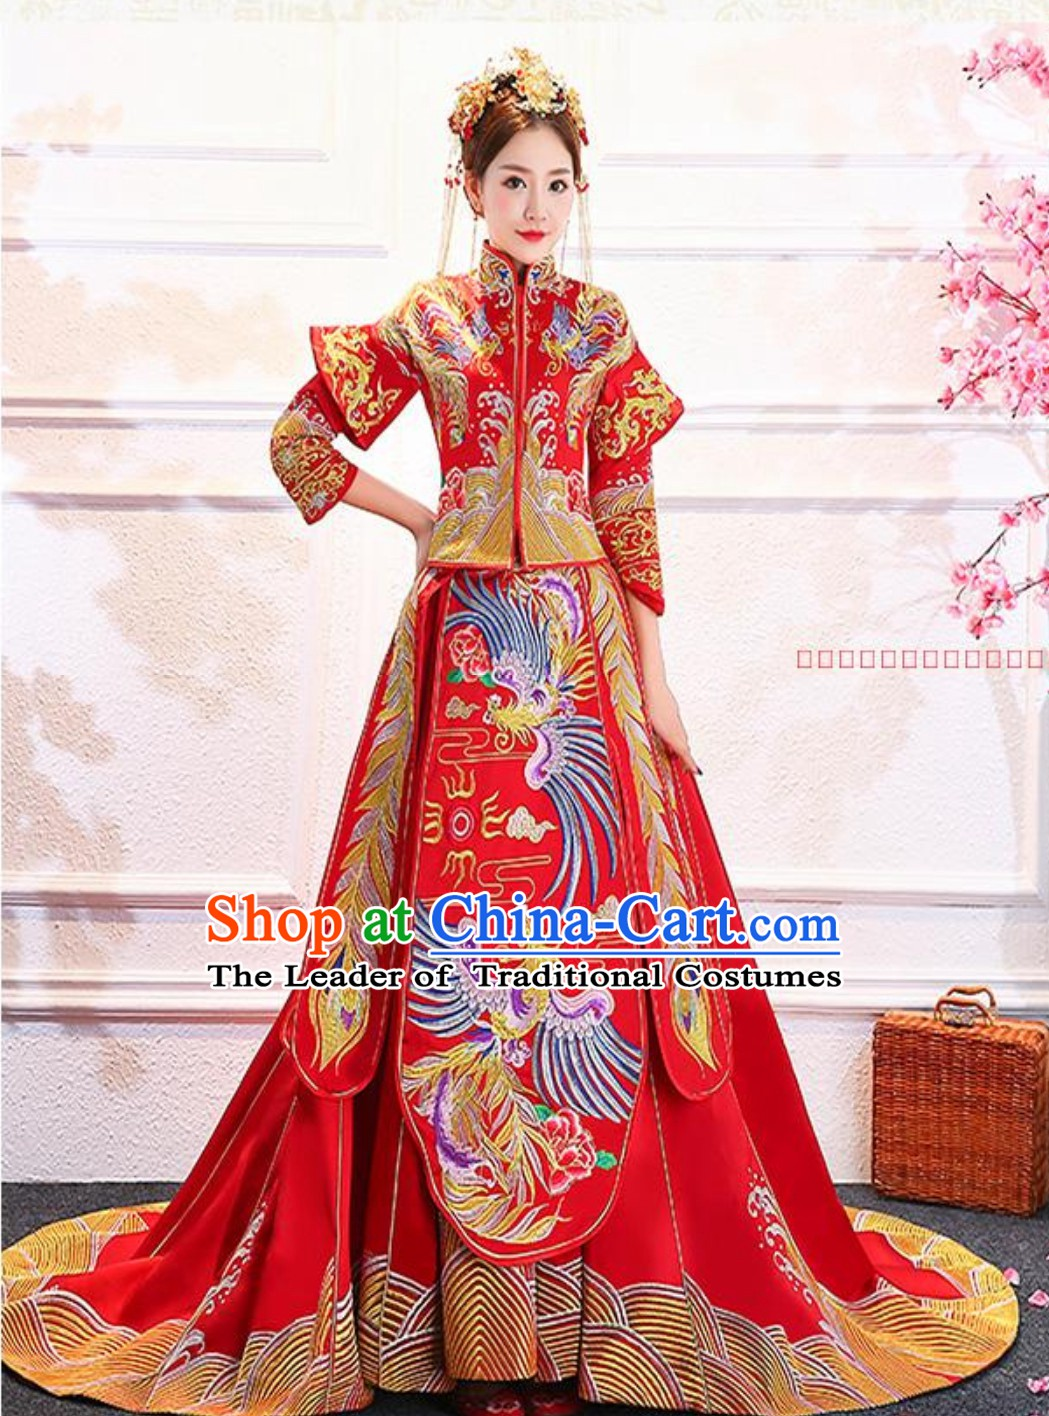 Embroidered Bride Chinese Traditional Wedding Dresses Ceremonial Clothing China Wedding Dress for Women